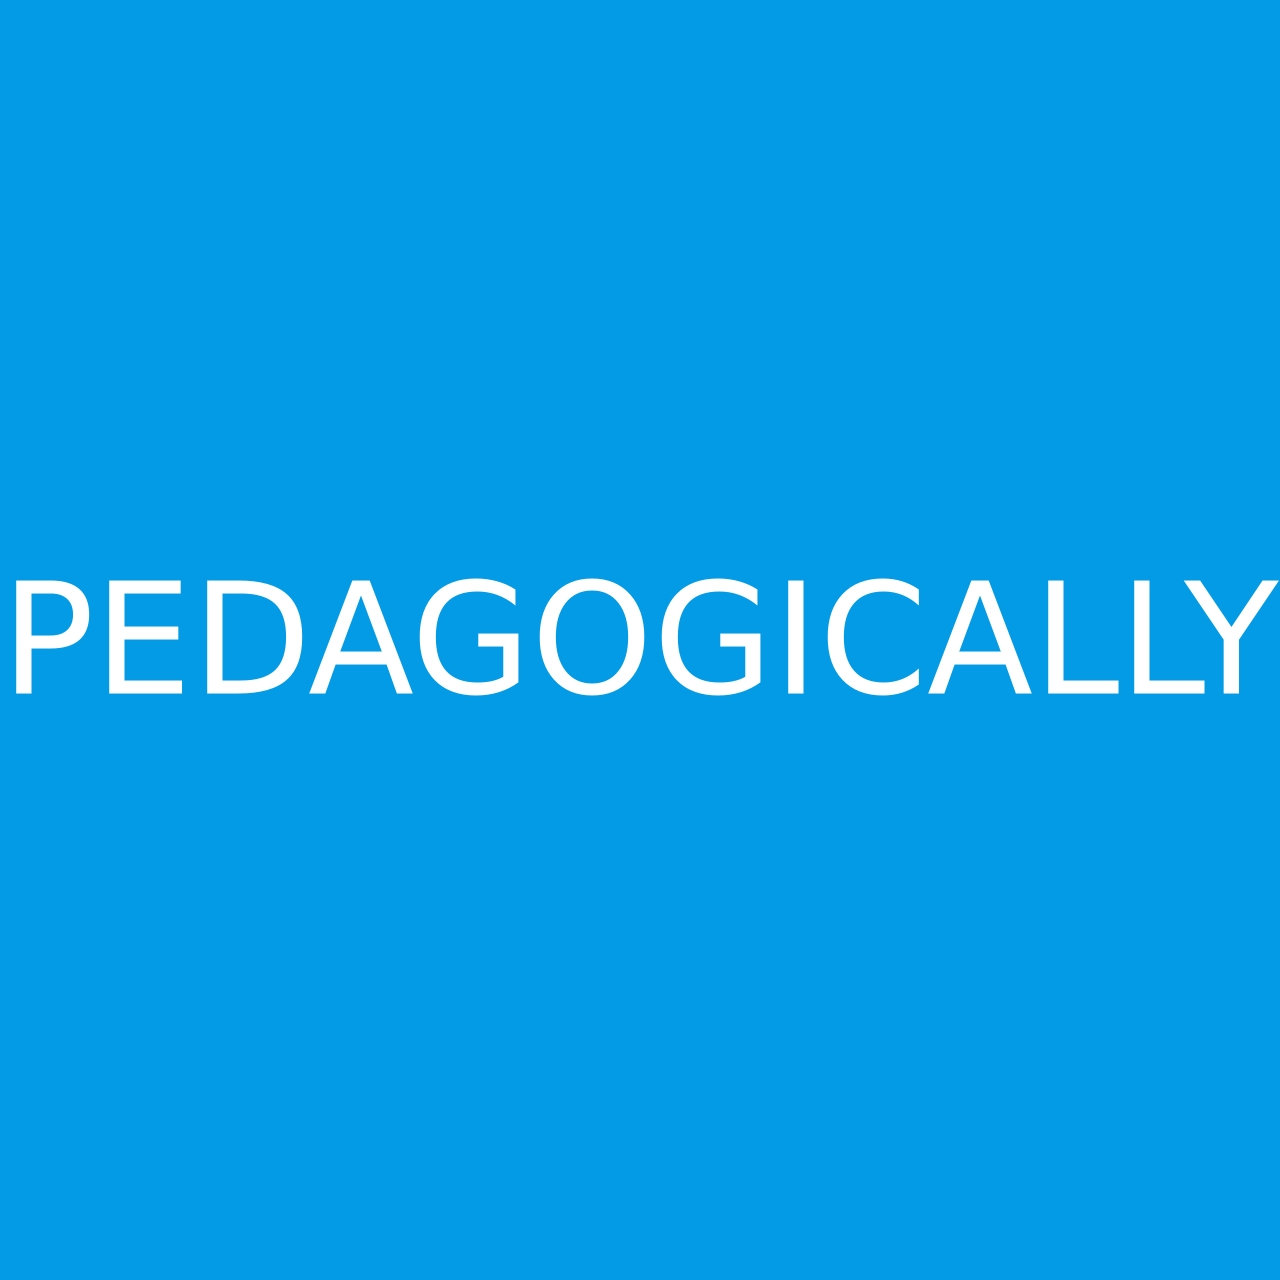 How to pronounce PEDAGOGICAL in English  JustPronounce